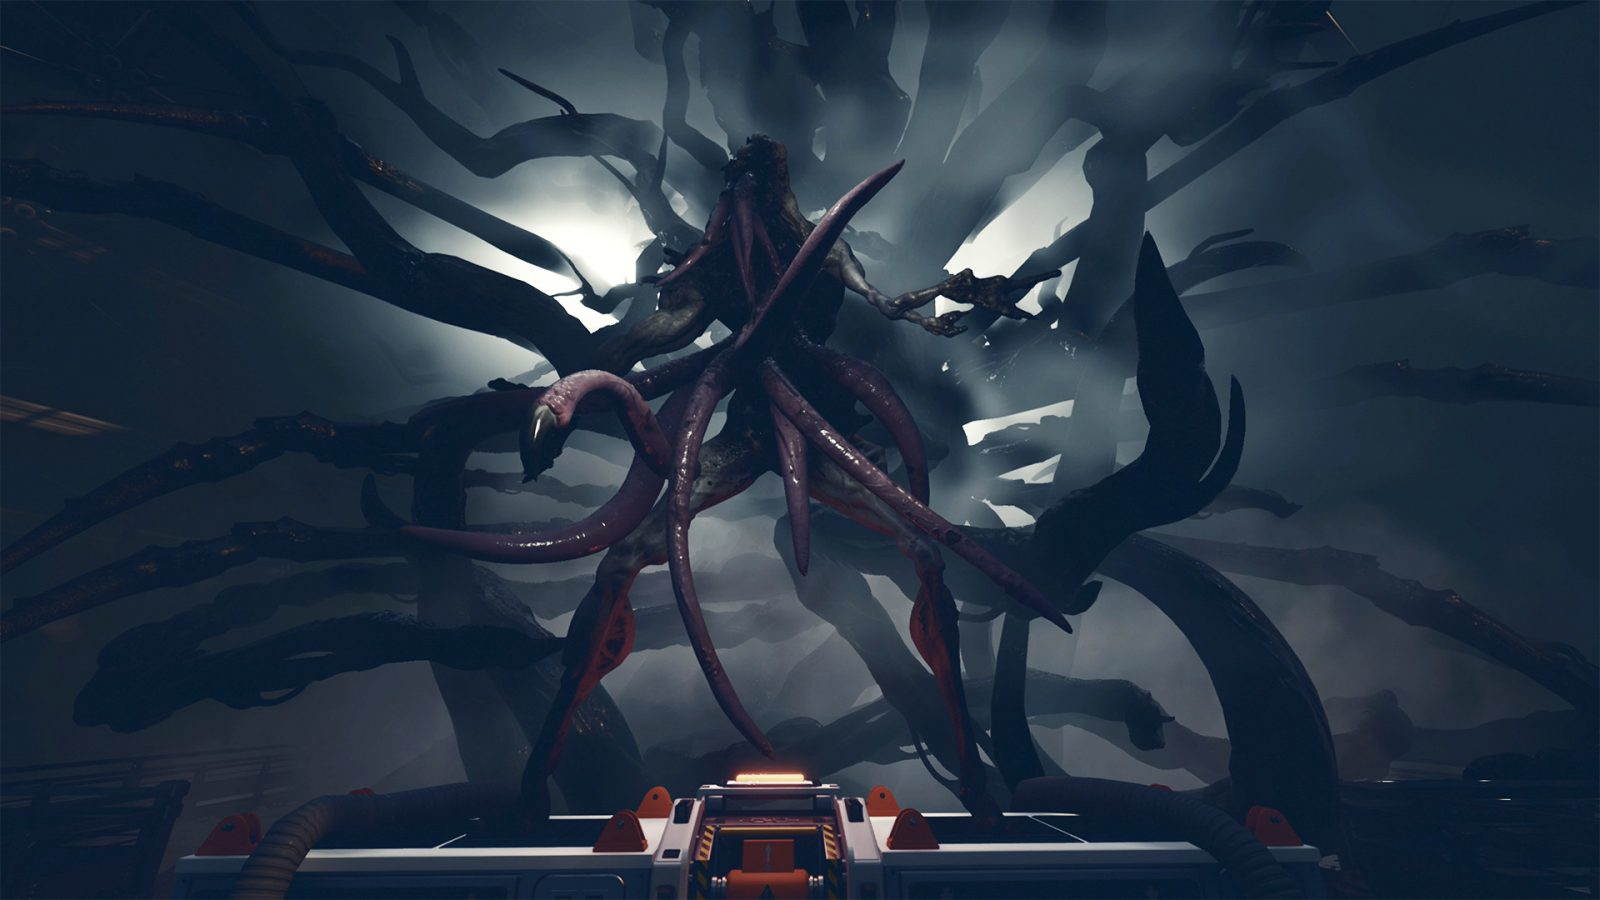 """Lovecraftian Cosmic Horror Game """"Moons of Madness"""" Launches for PC on October 22"""